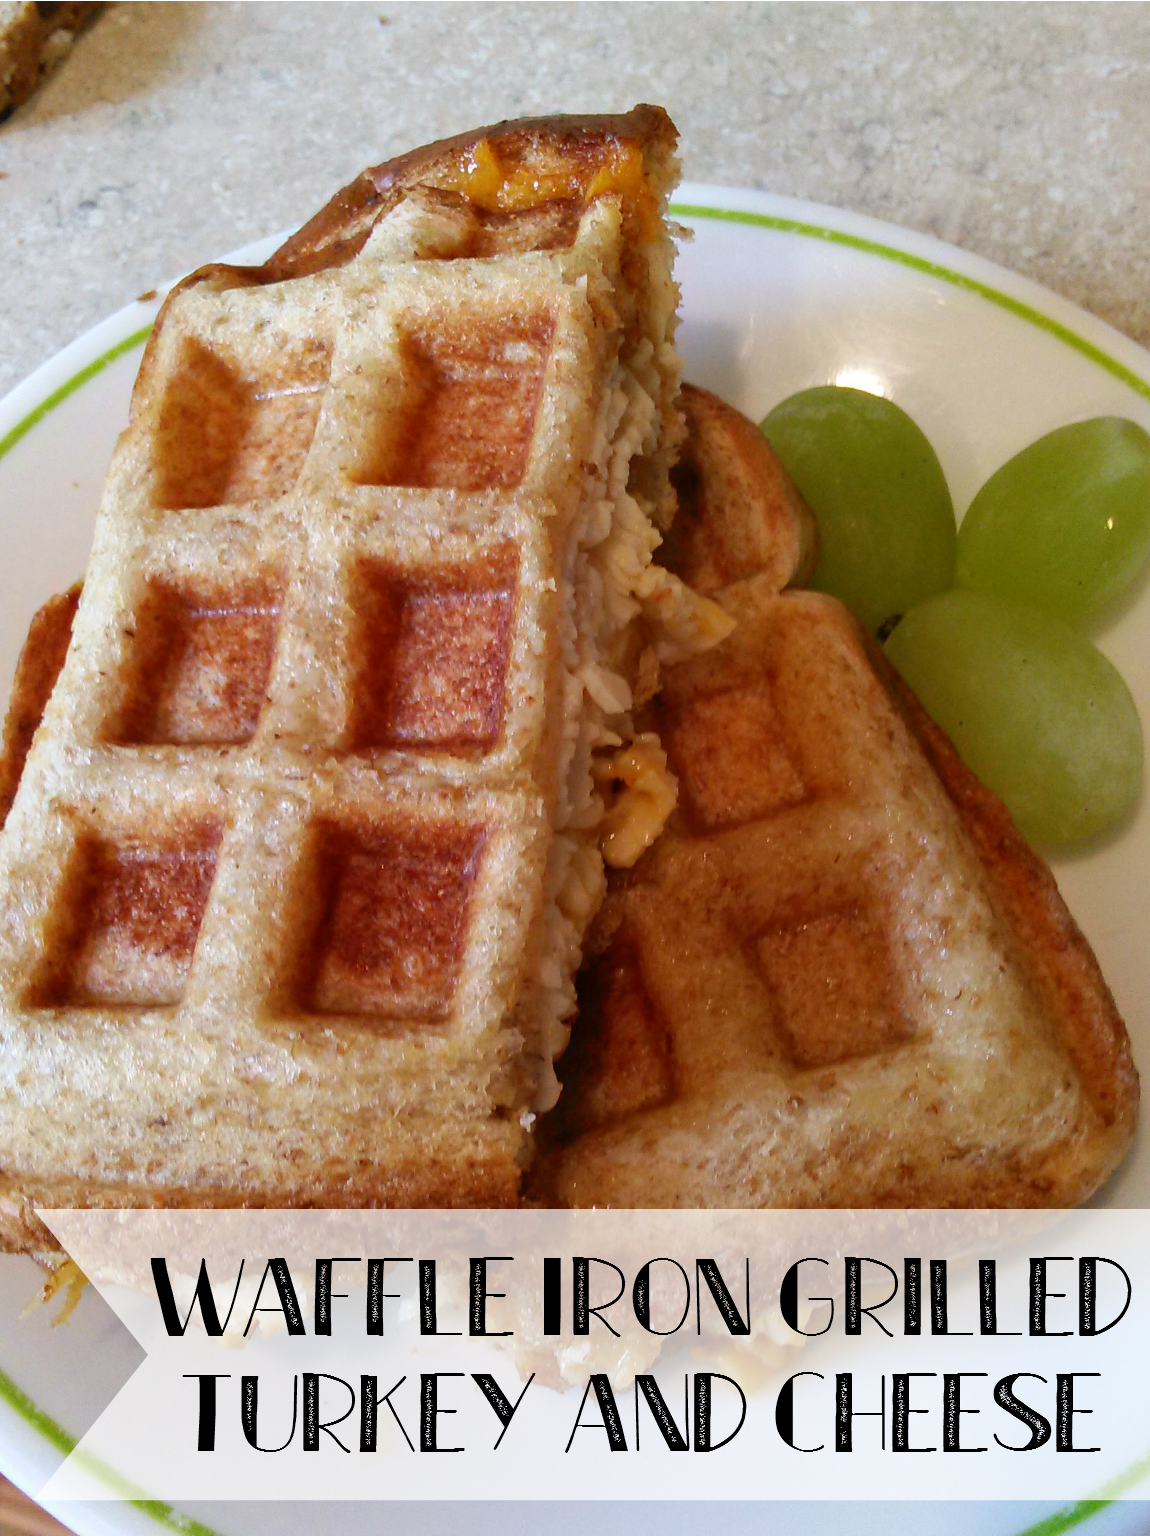 Waffle Iron Grilled Cheese and Turkey